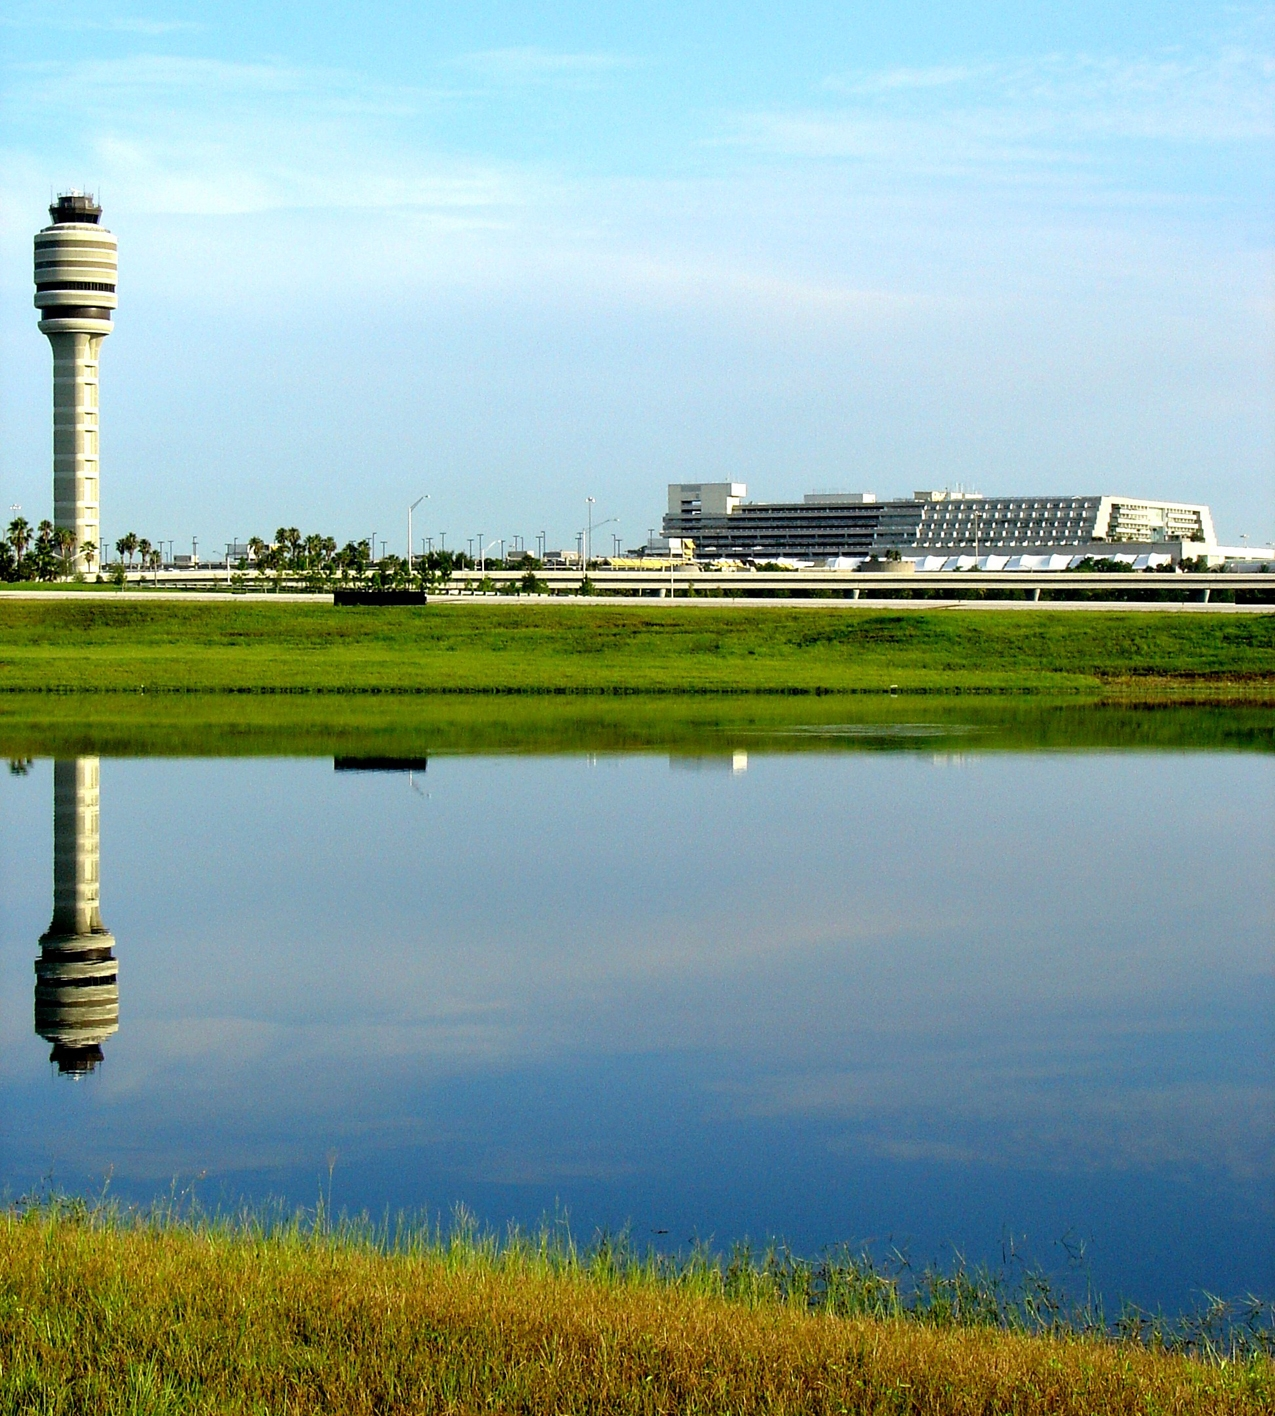 FAA Tower/Terminal Reflected